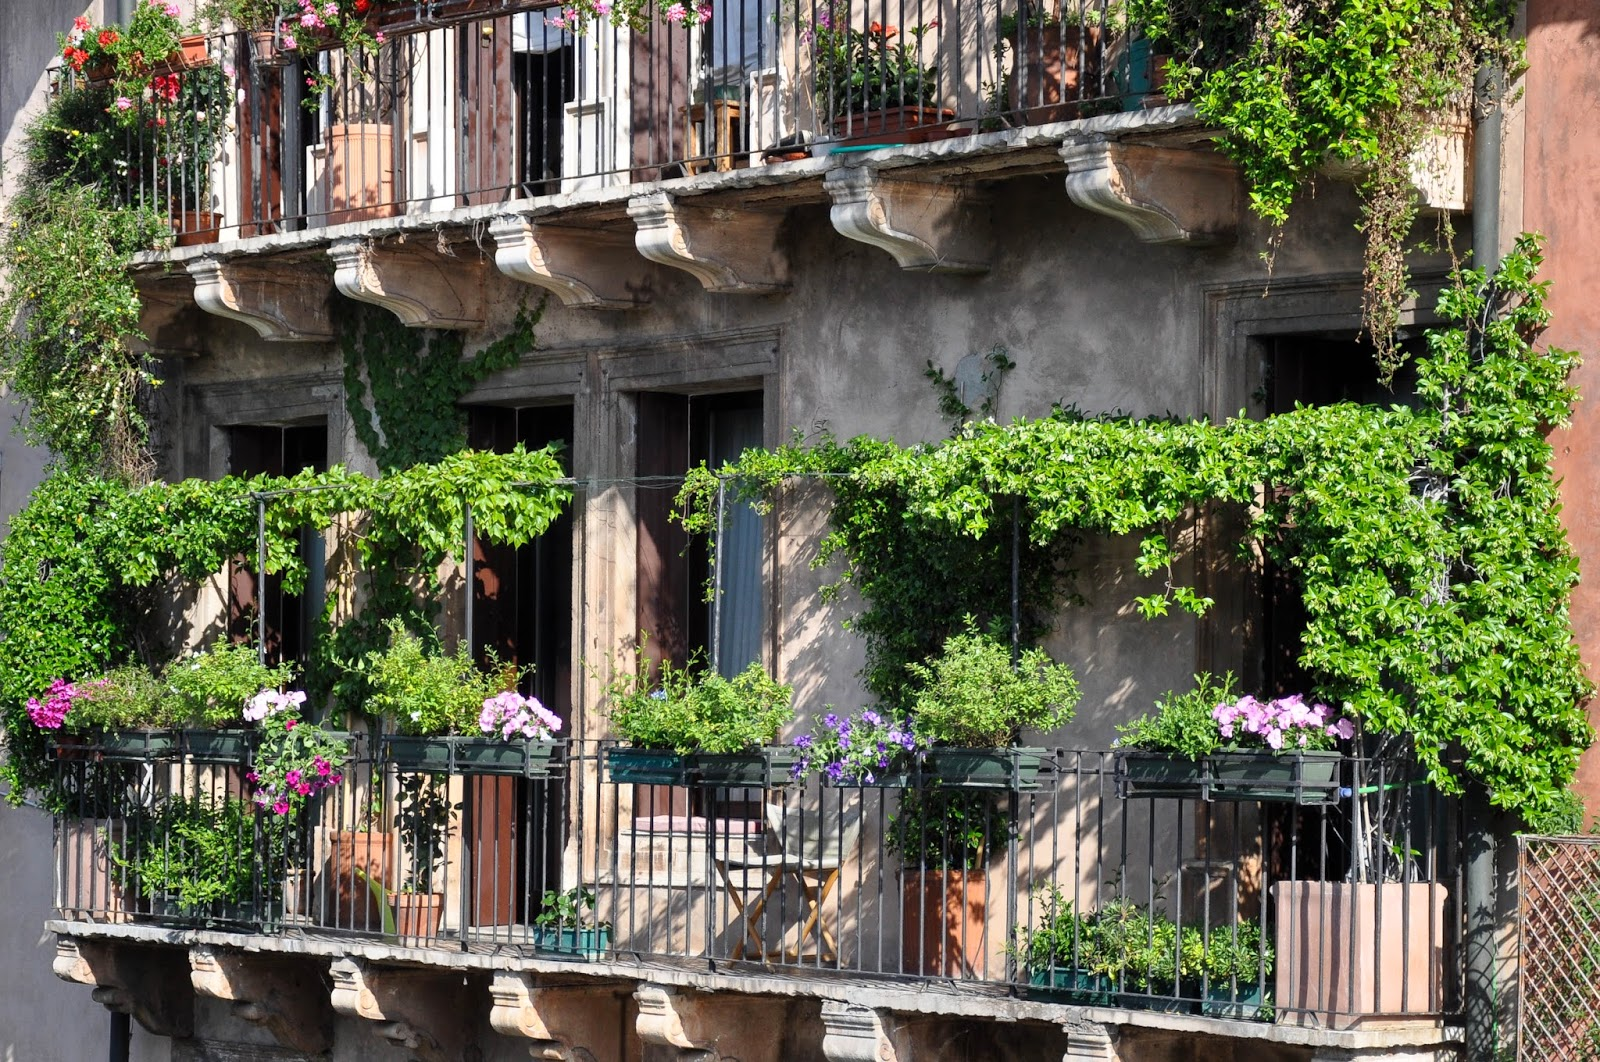 A balcony draped with greenery in Vicenza, Italy